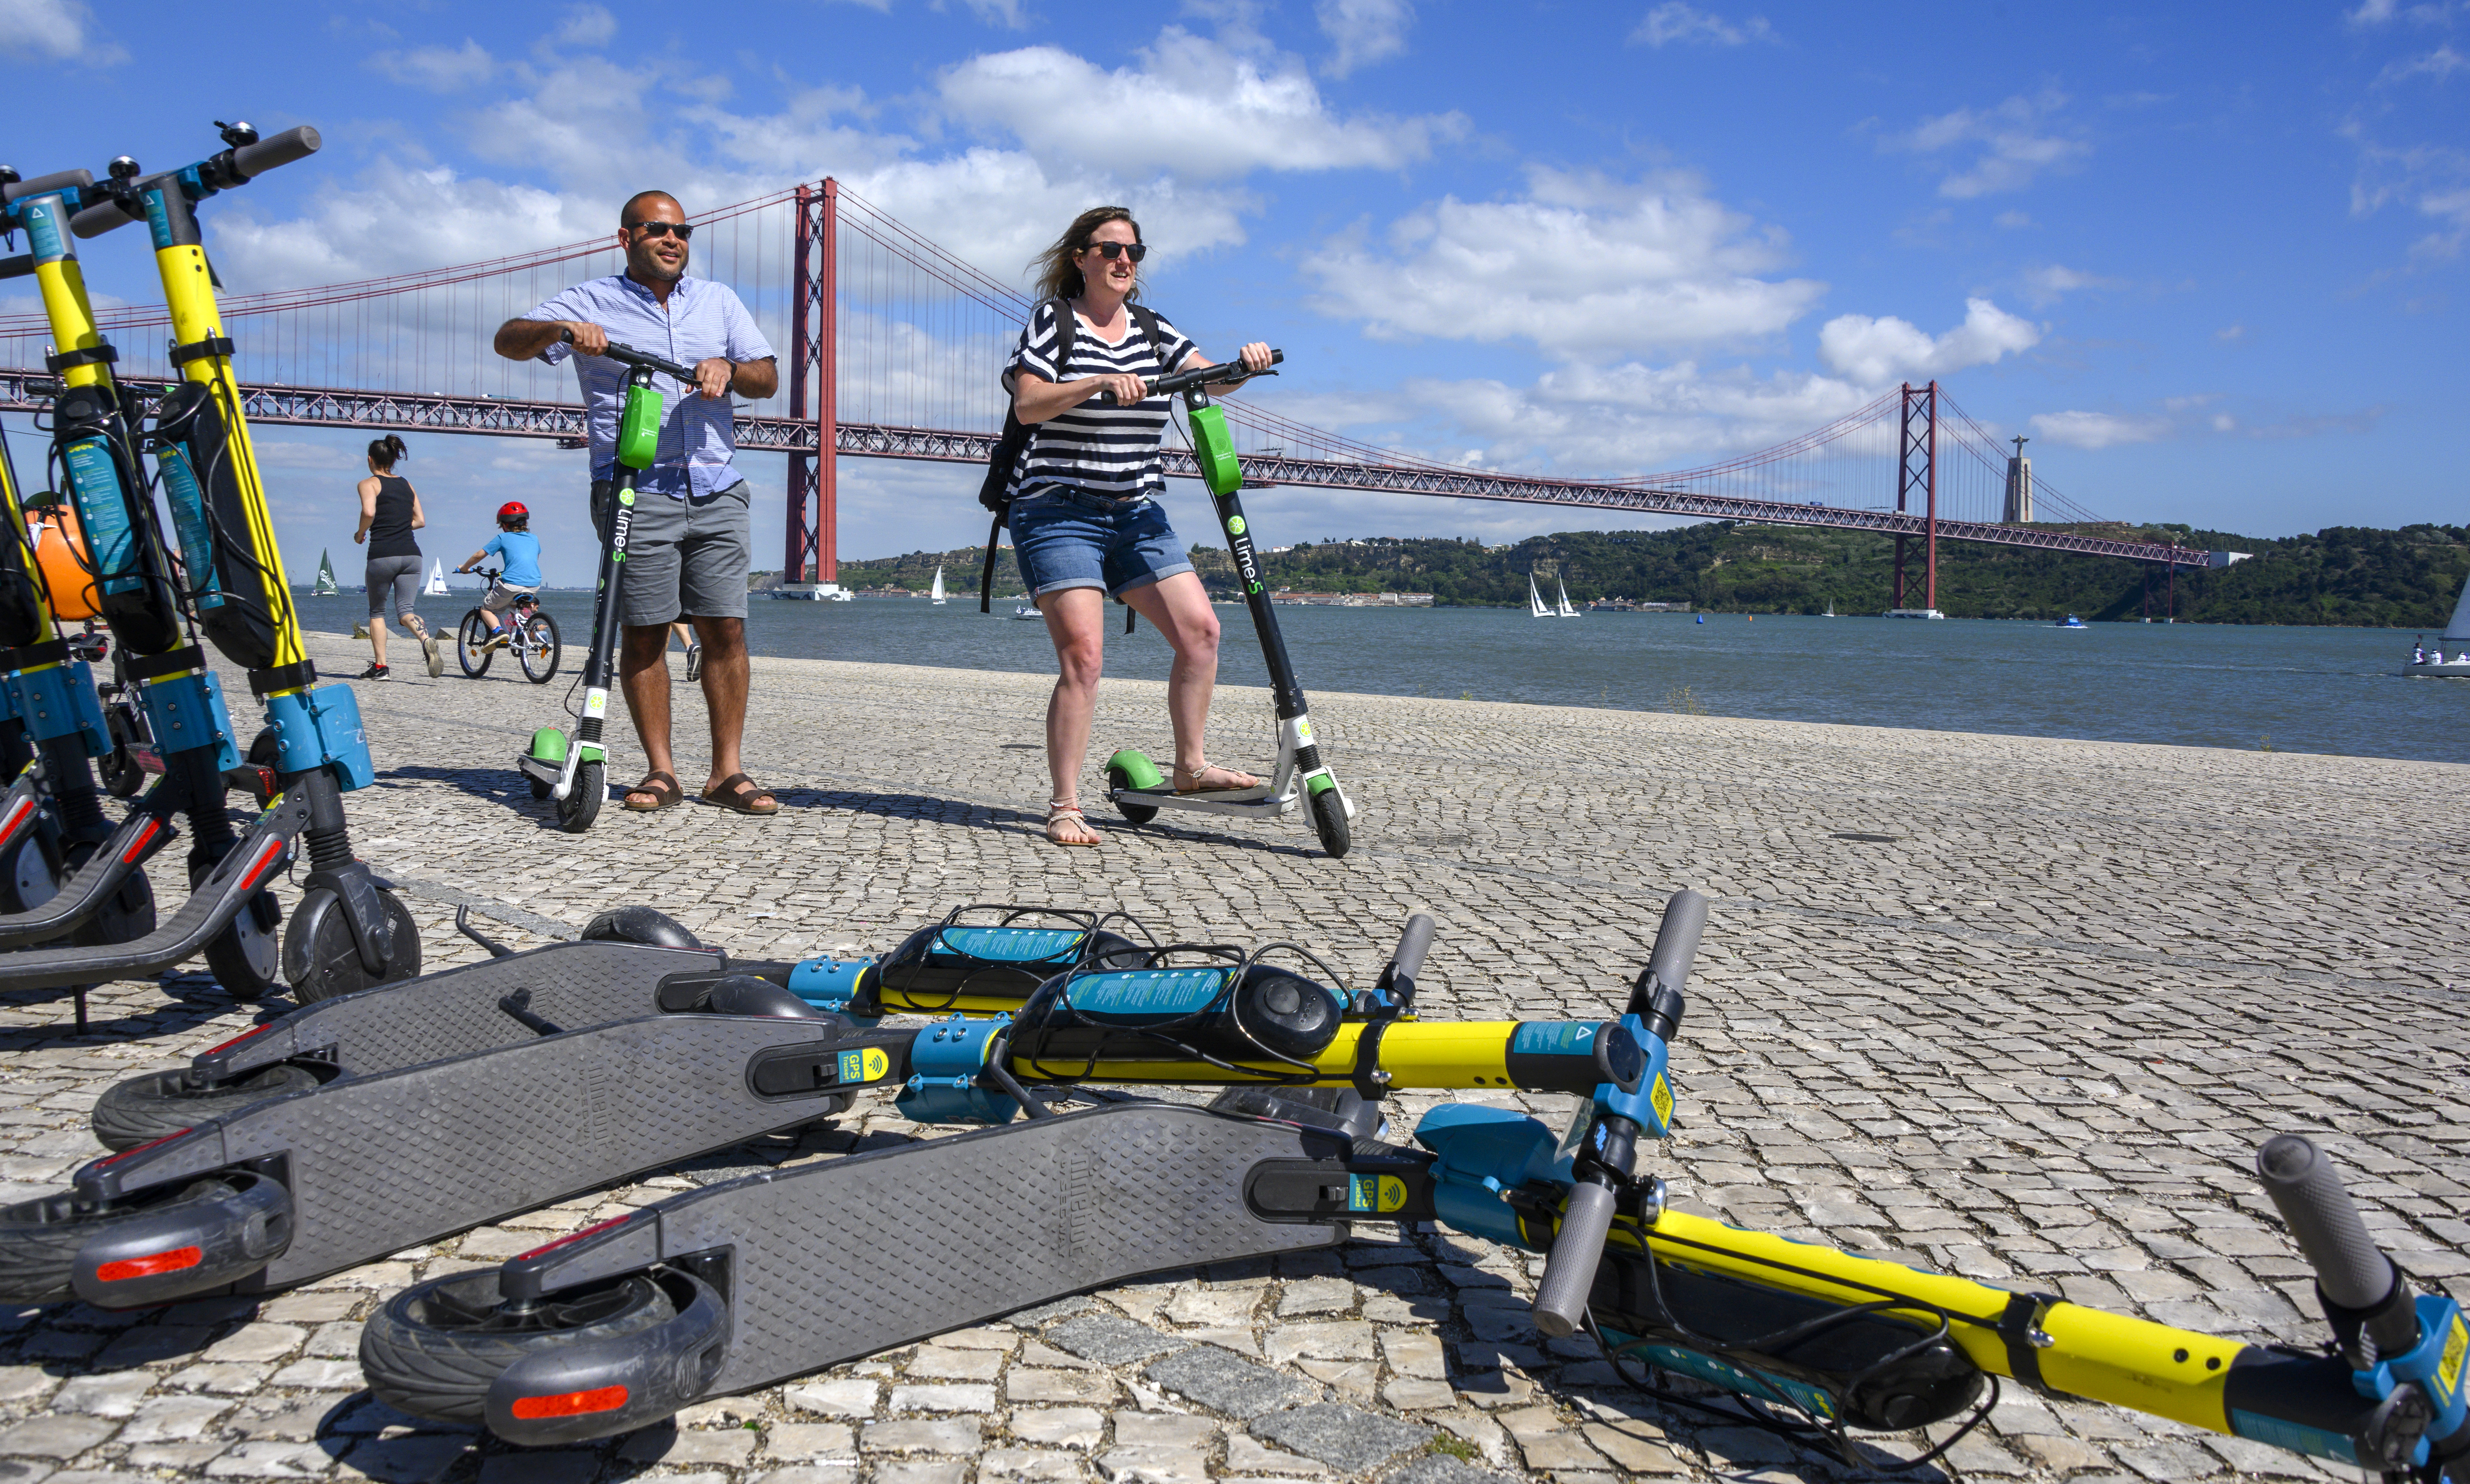 We regret to inform you that scooters aren't actually good for the environment